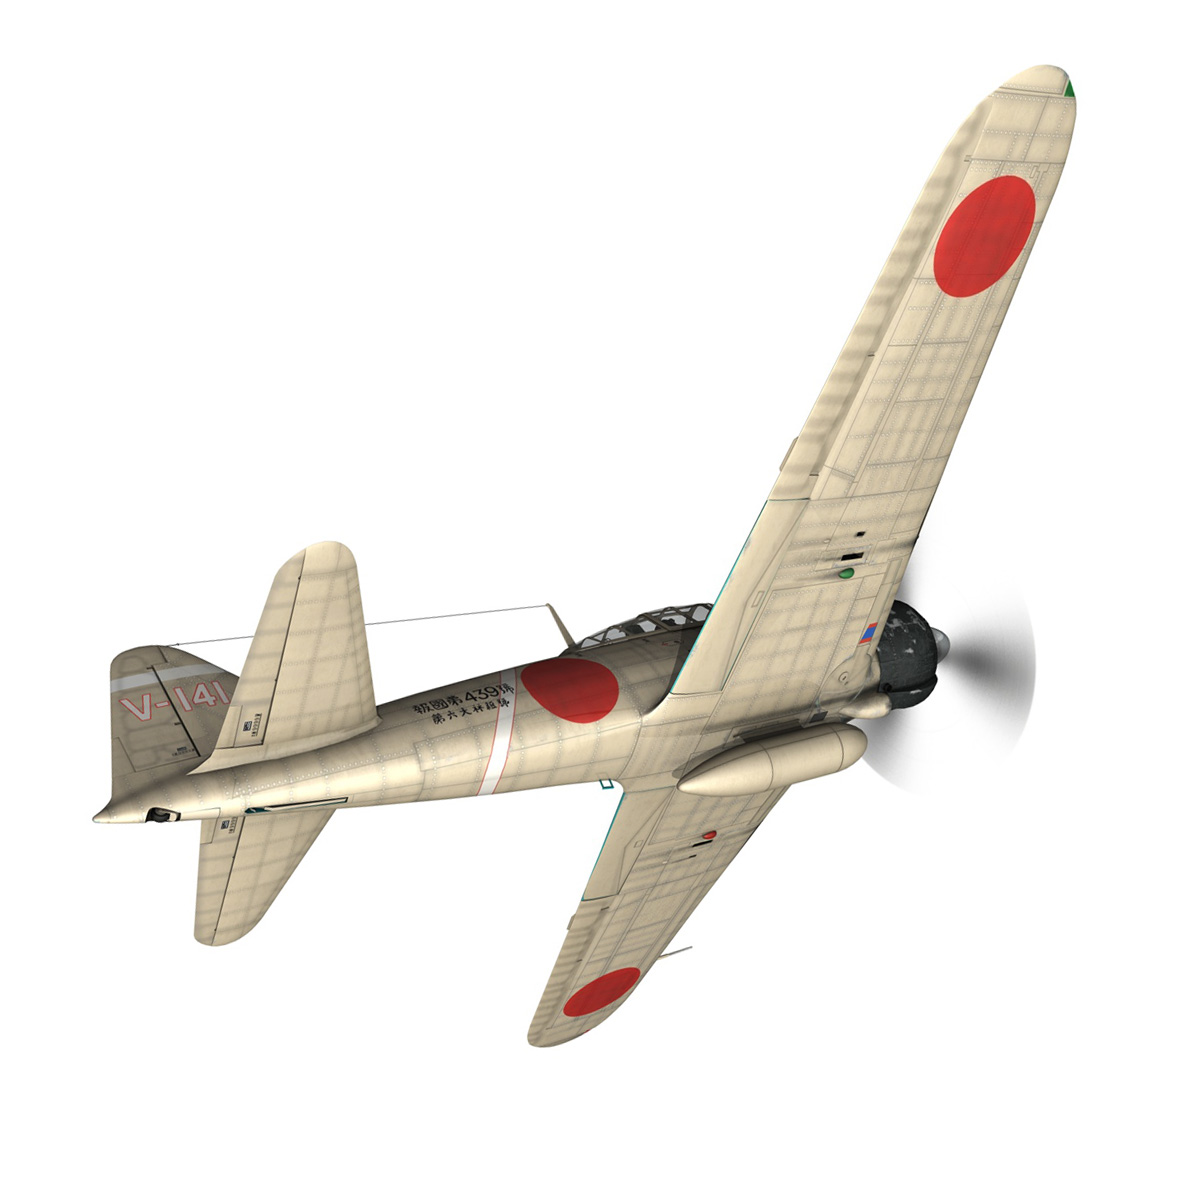 mitsubishi a6m2 zero – tainan air group 3d model fbx lwo obj 272730